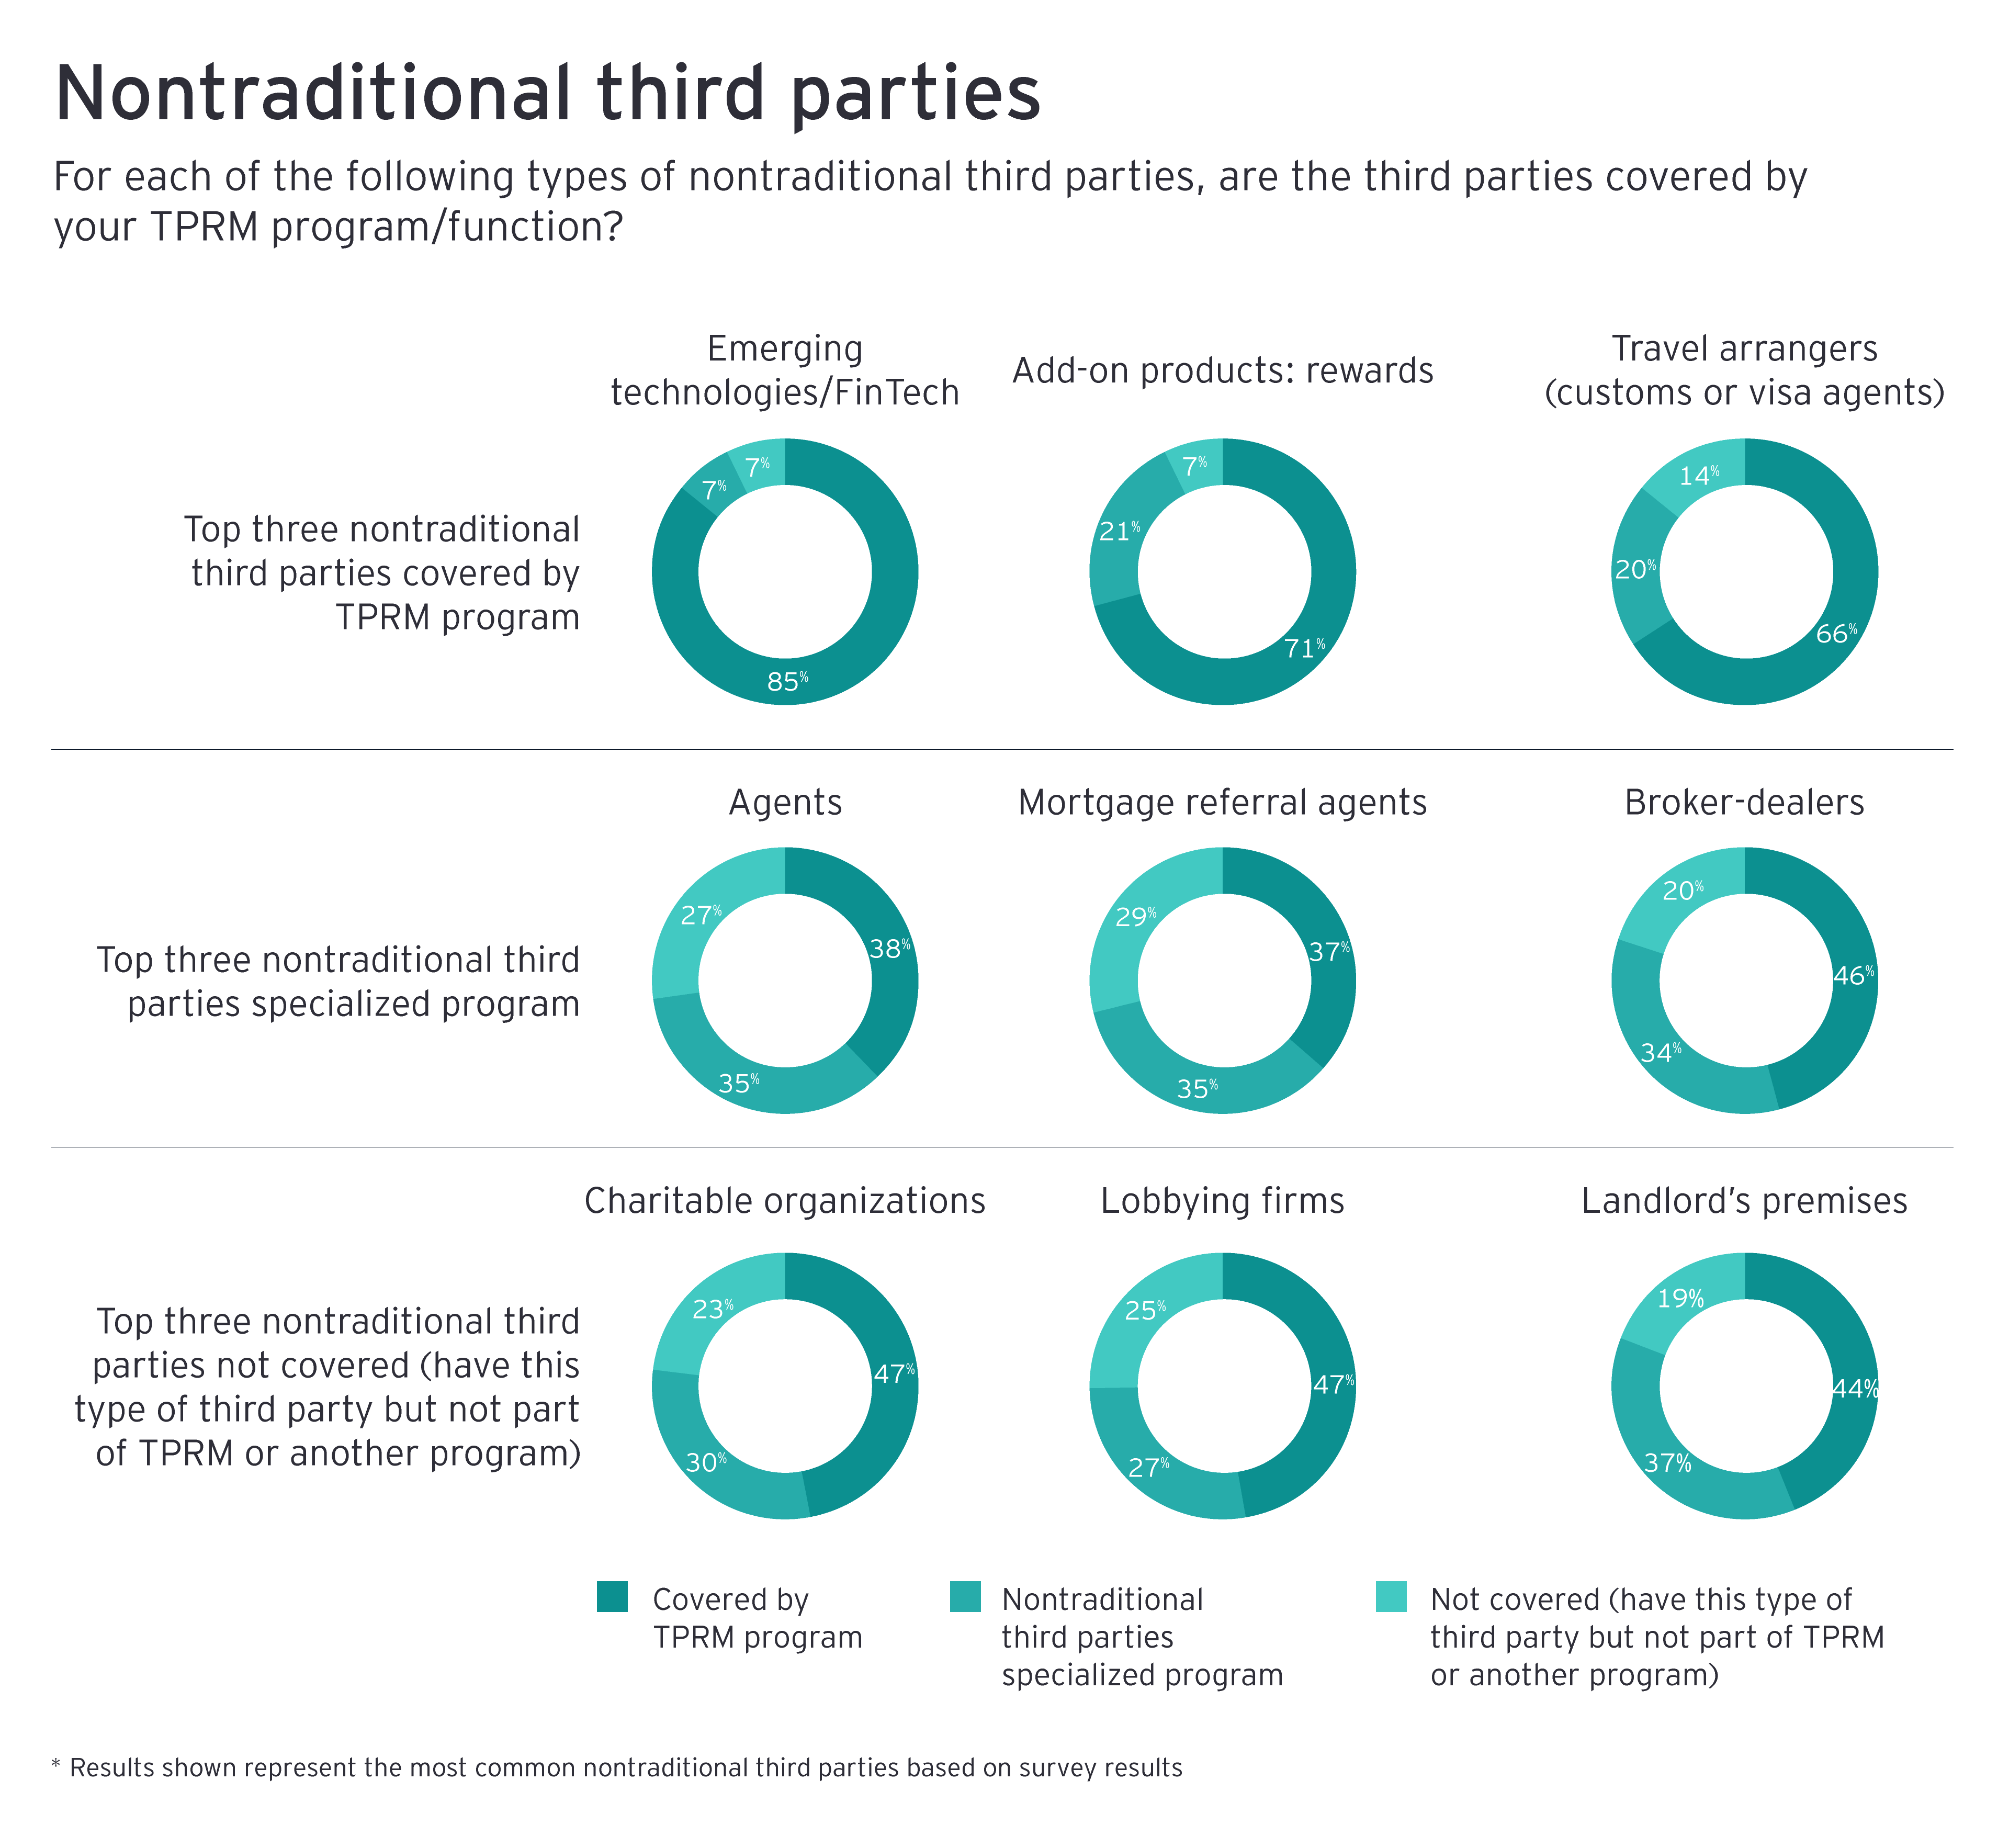 Nontraditional third parties